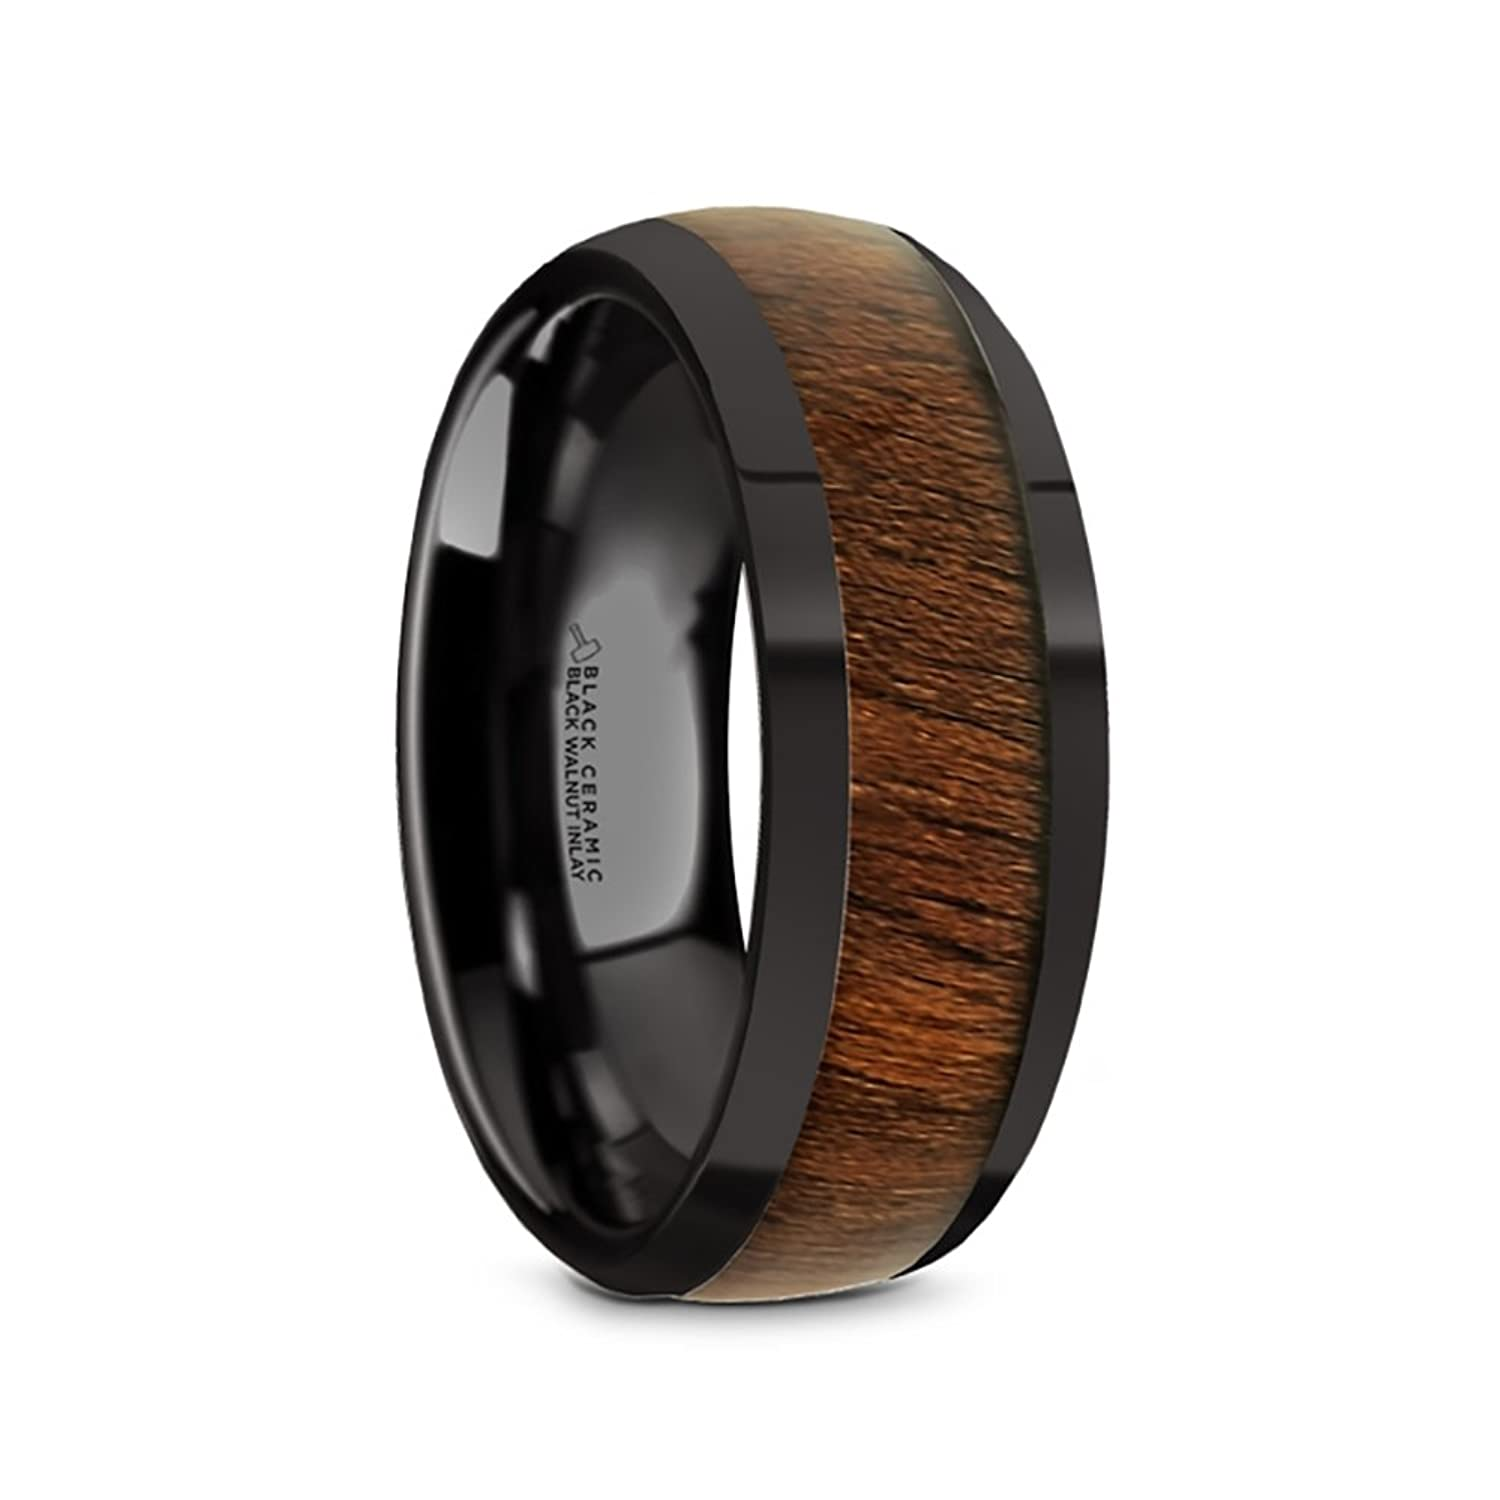 Thorsten WALLACE Domed Style Black Ceramic Wedding Ring with Exotic Black Walnut Wood Inlay and Polished Beveled Edges Comfort Fit Lightweight Durable Wooden Wedding Band by Rings - 8mm